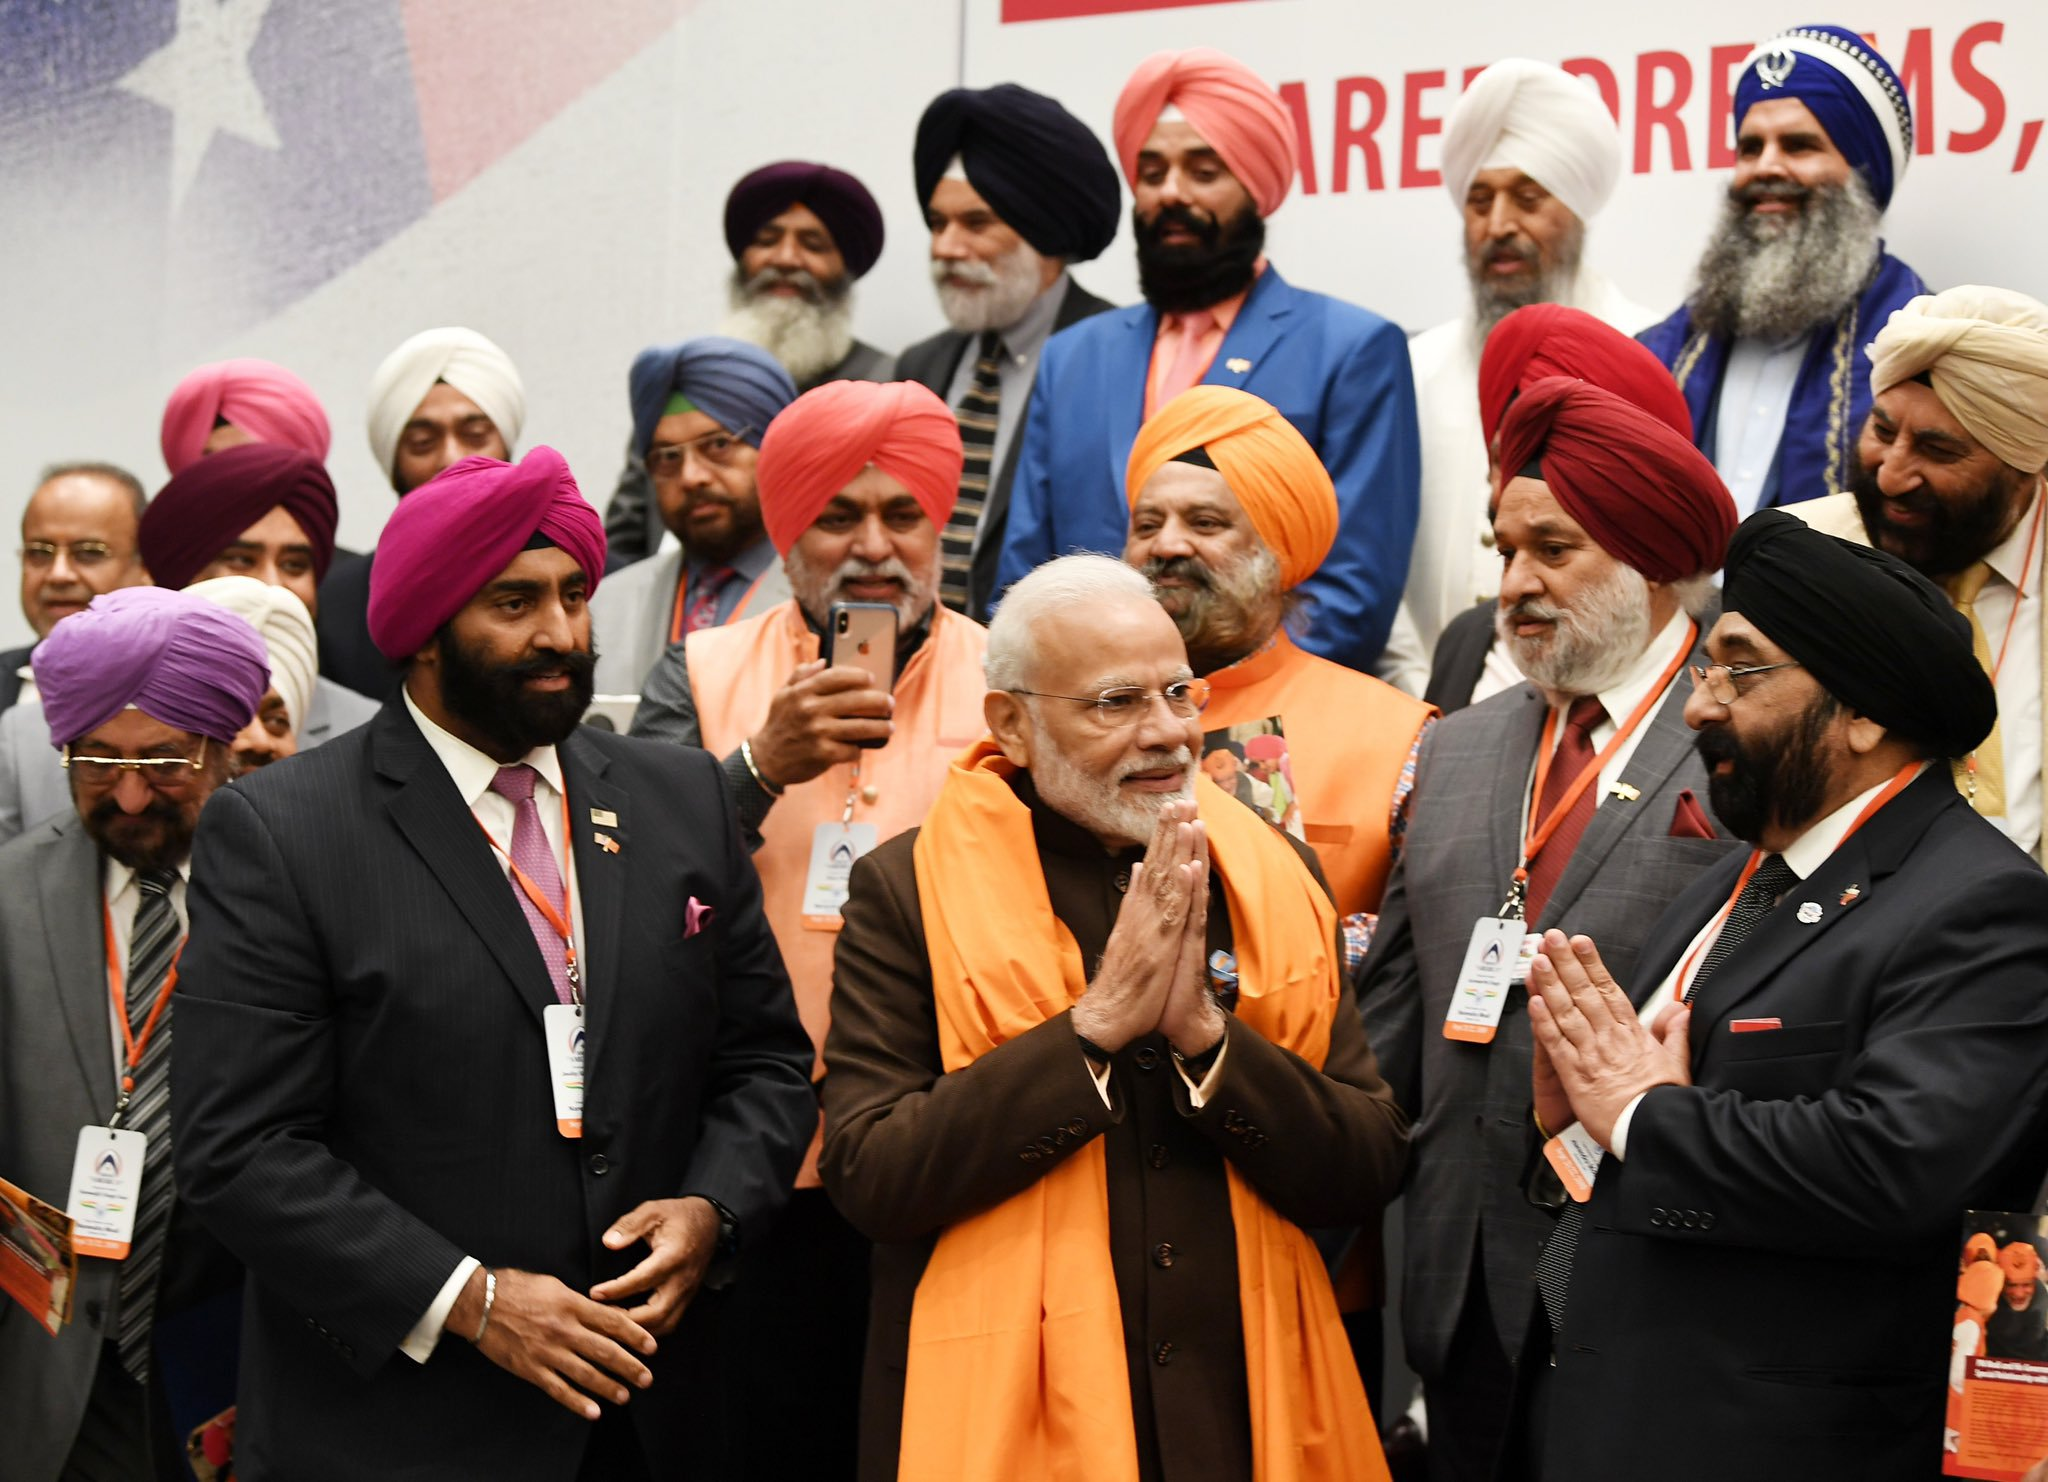 PM Modi interacting with the Sikh community in Houston, Texas. Photo courtesy: Twitter/@narendramodi